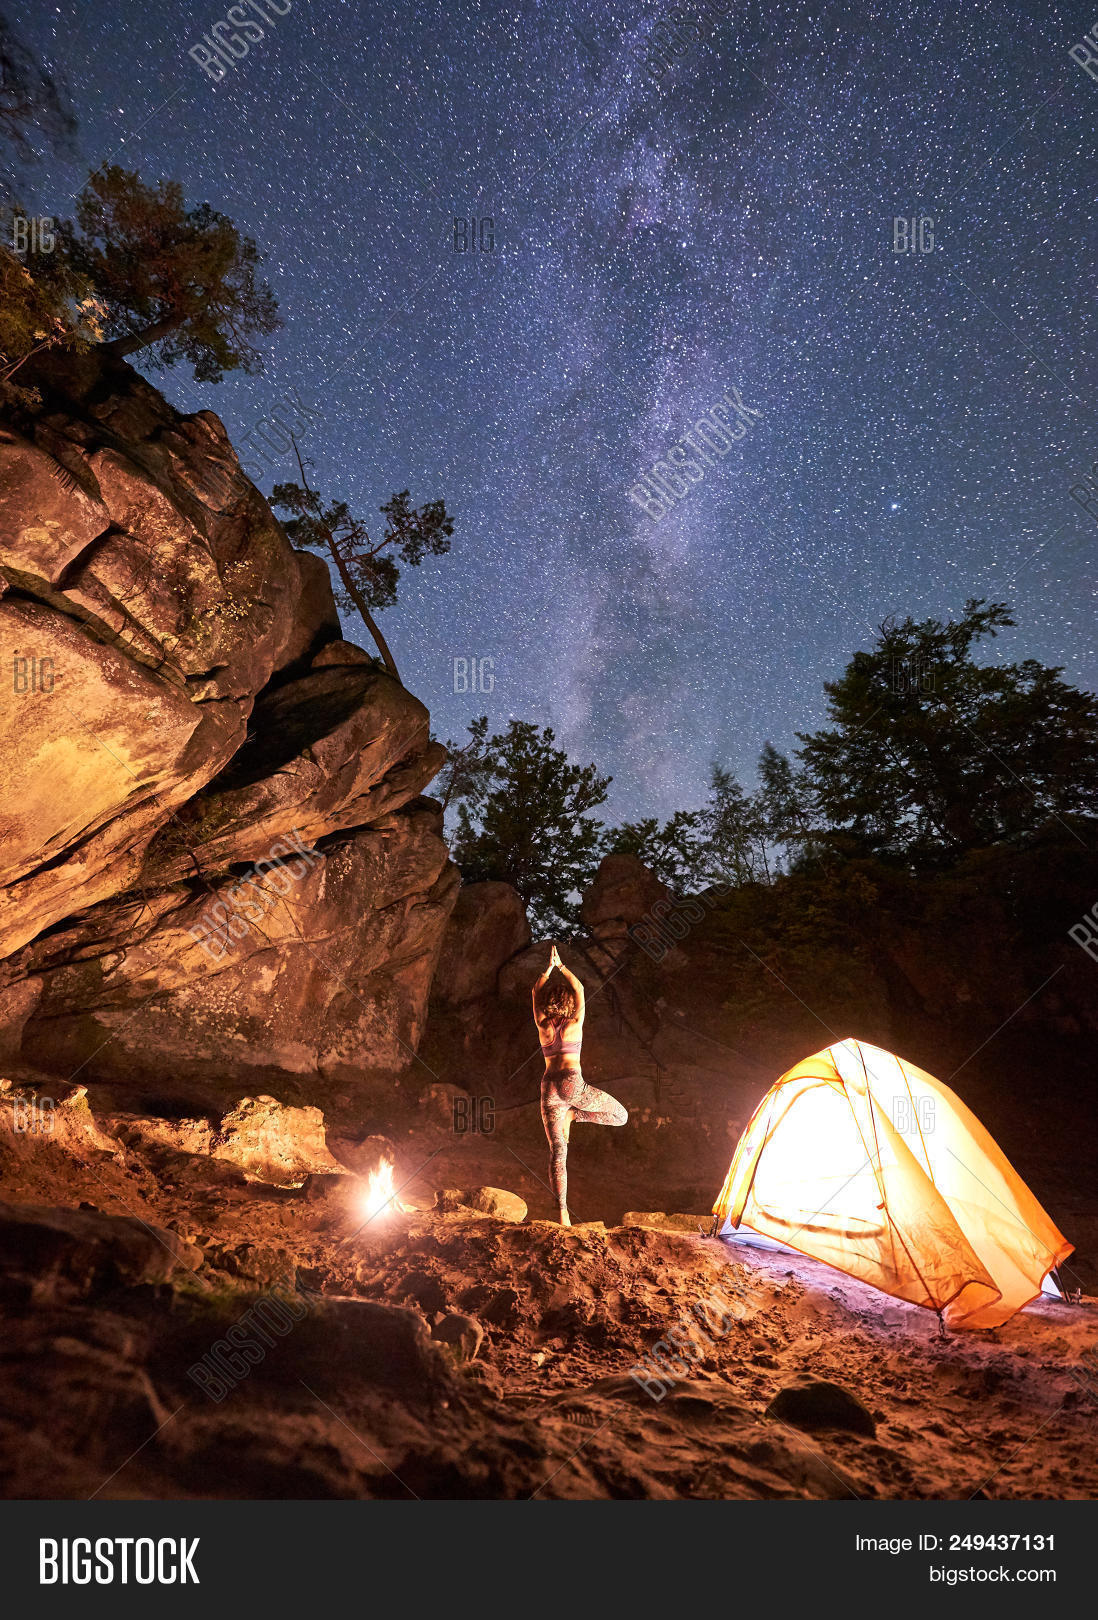 4aaf43d701588 🔥 Night Camping Between Mountains Rocks. Lit By Campfire Back View ...